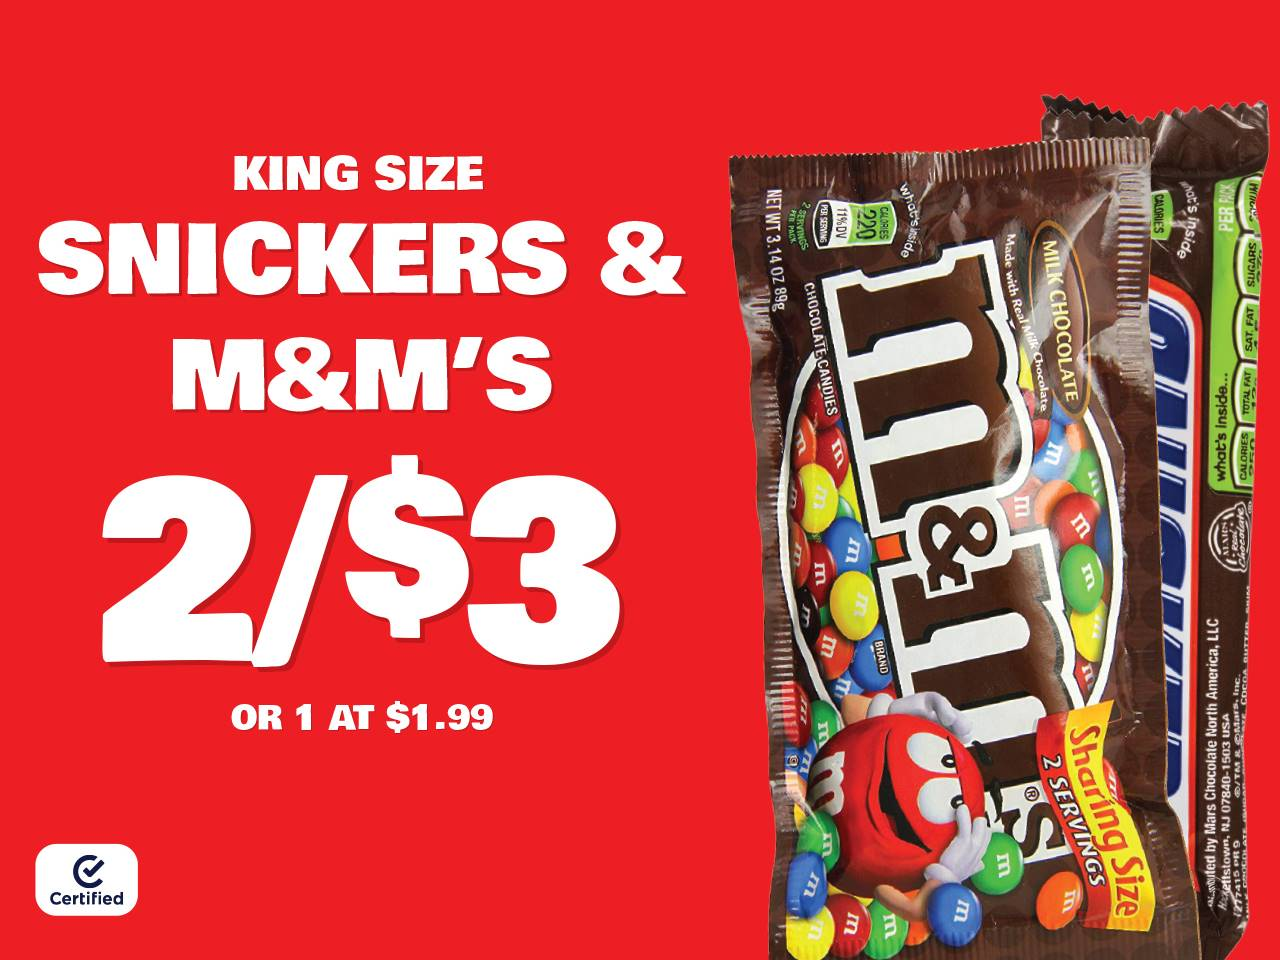 King Size Snickers & M&M's 2 for $3 or 1 at $1.99